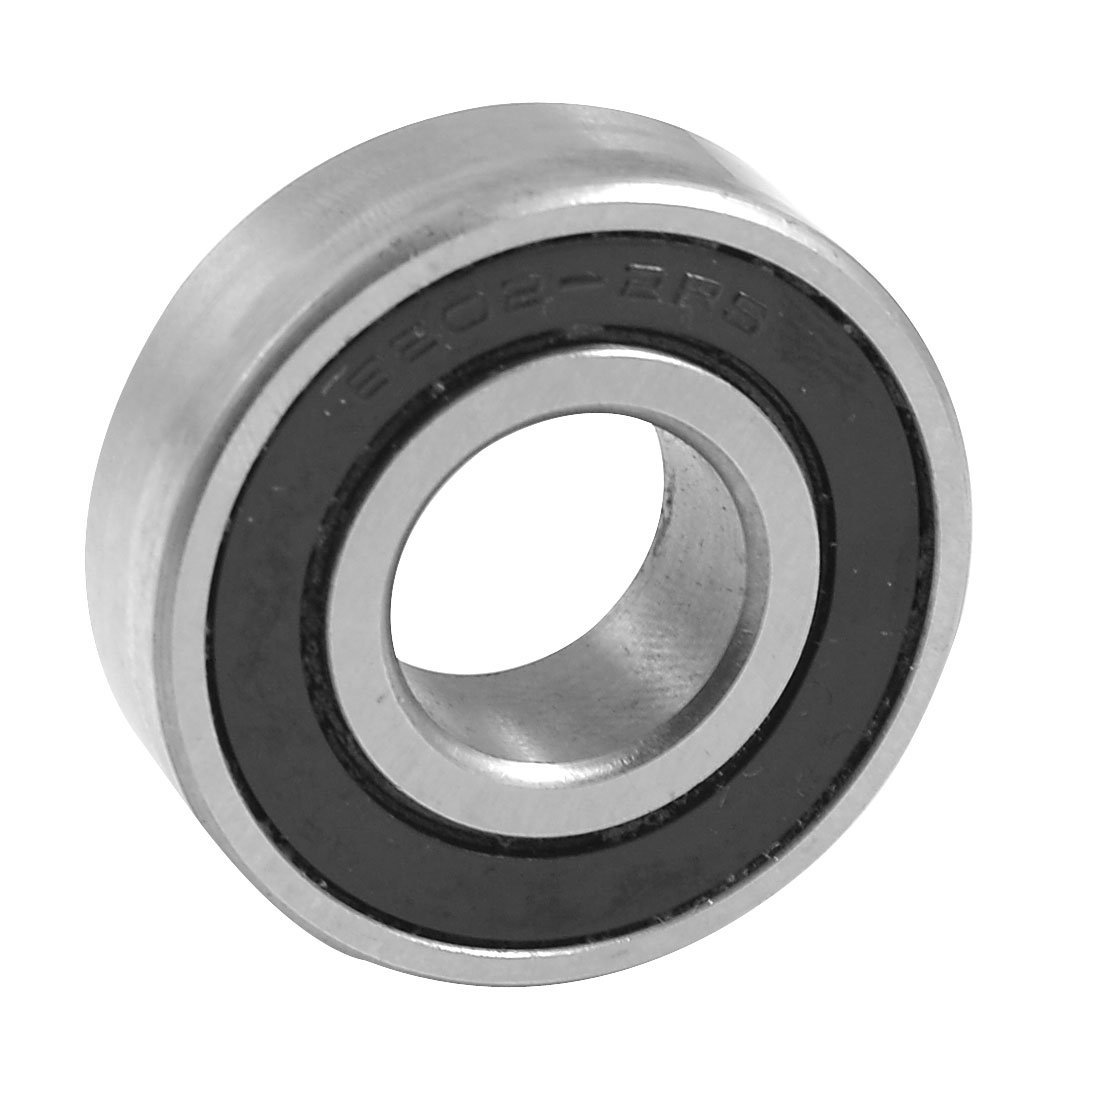 SODIAL(R) 6202-2RS Shielded 15mm x 35mm x 11mm Deep Groove Ball Bearing